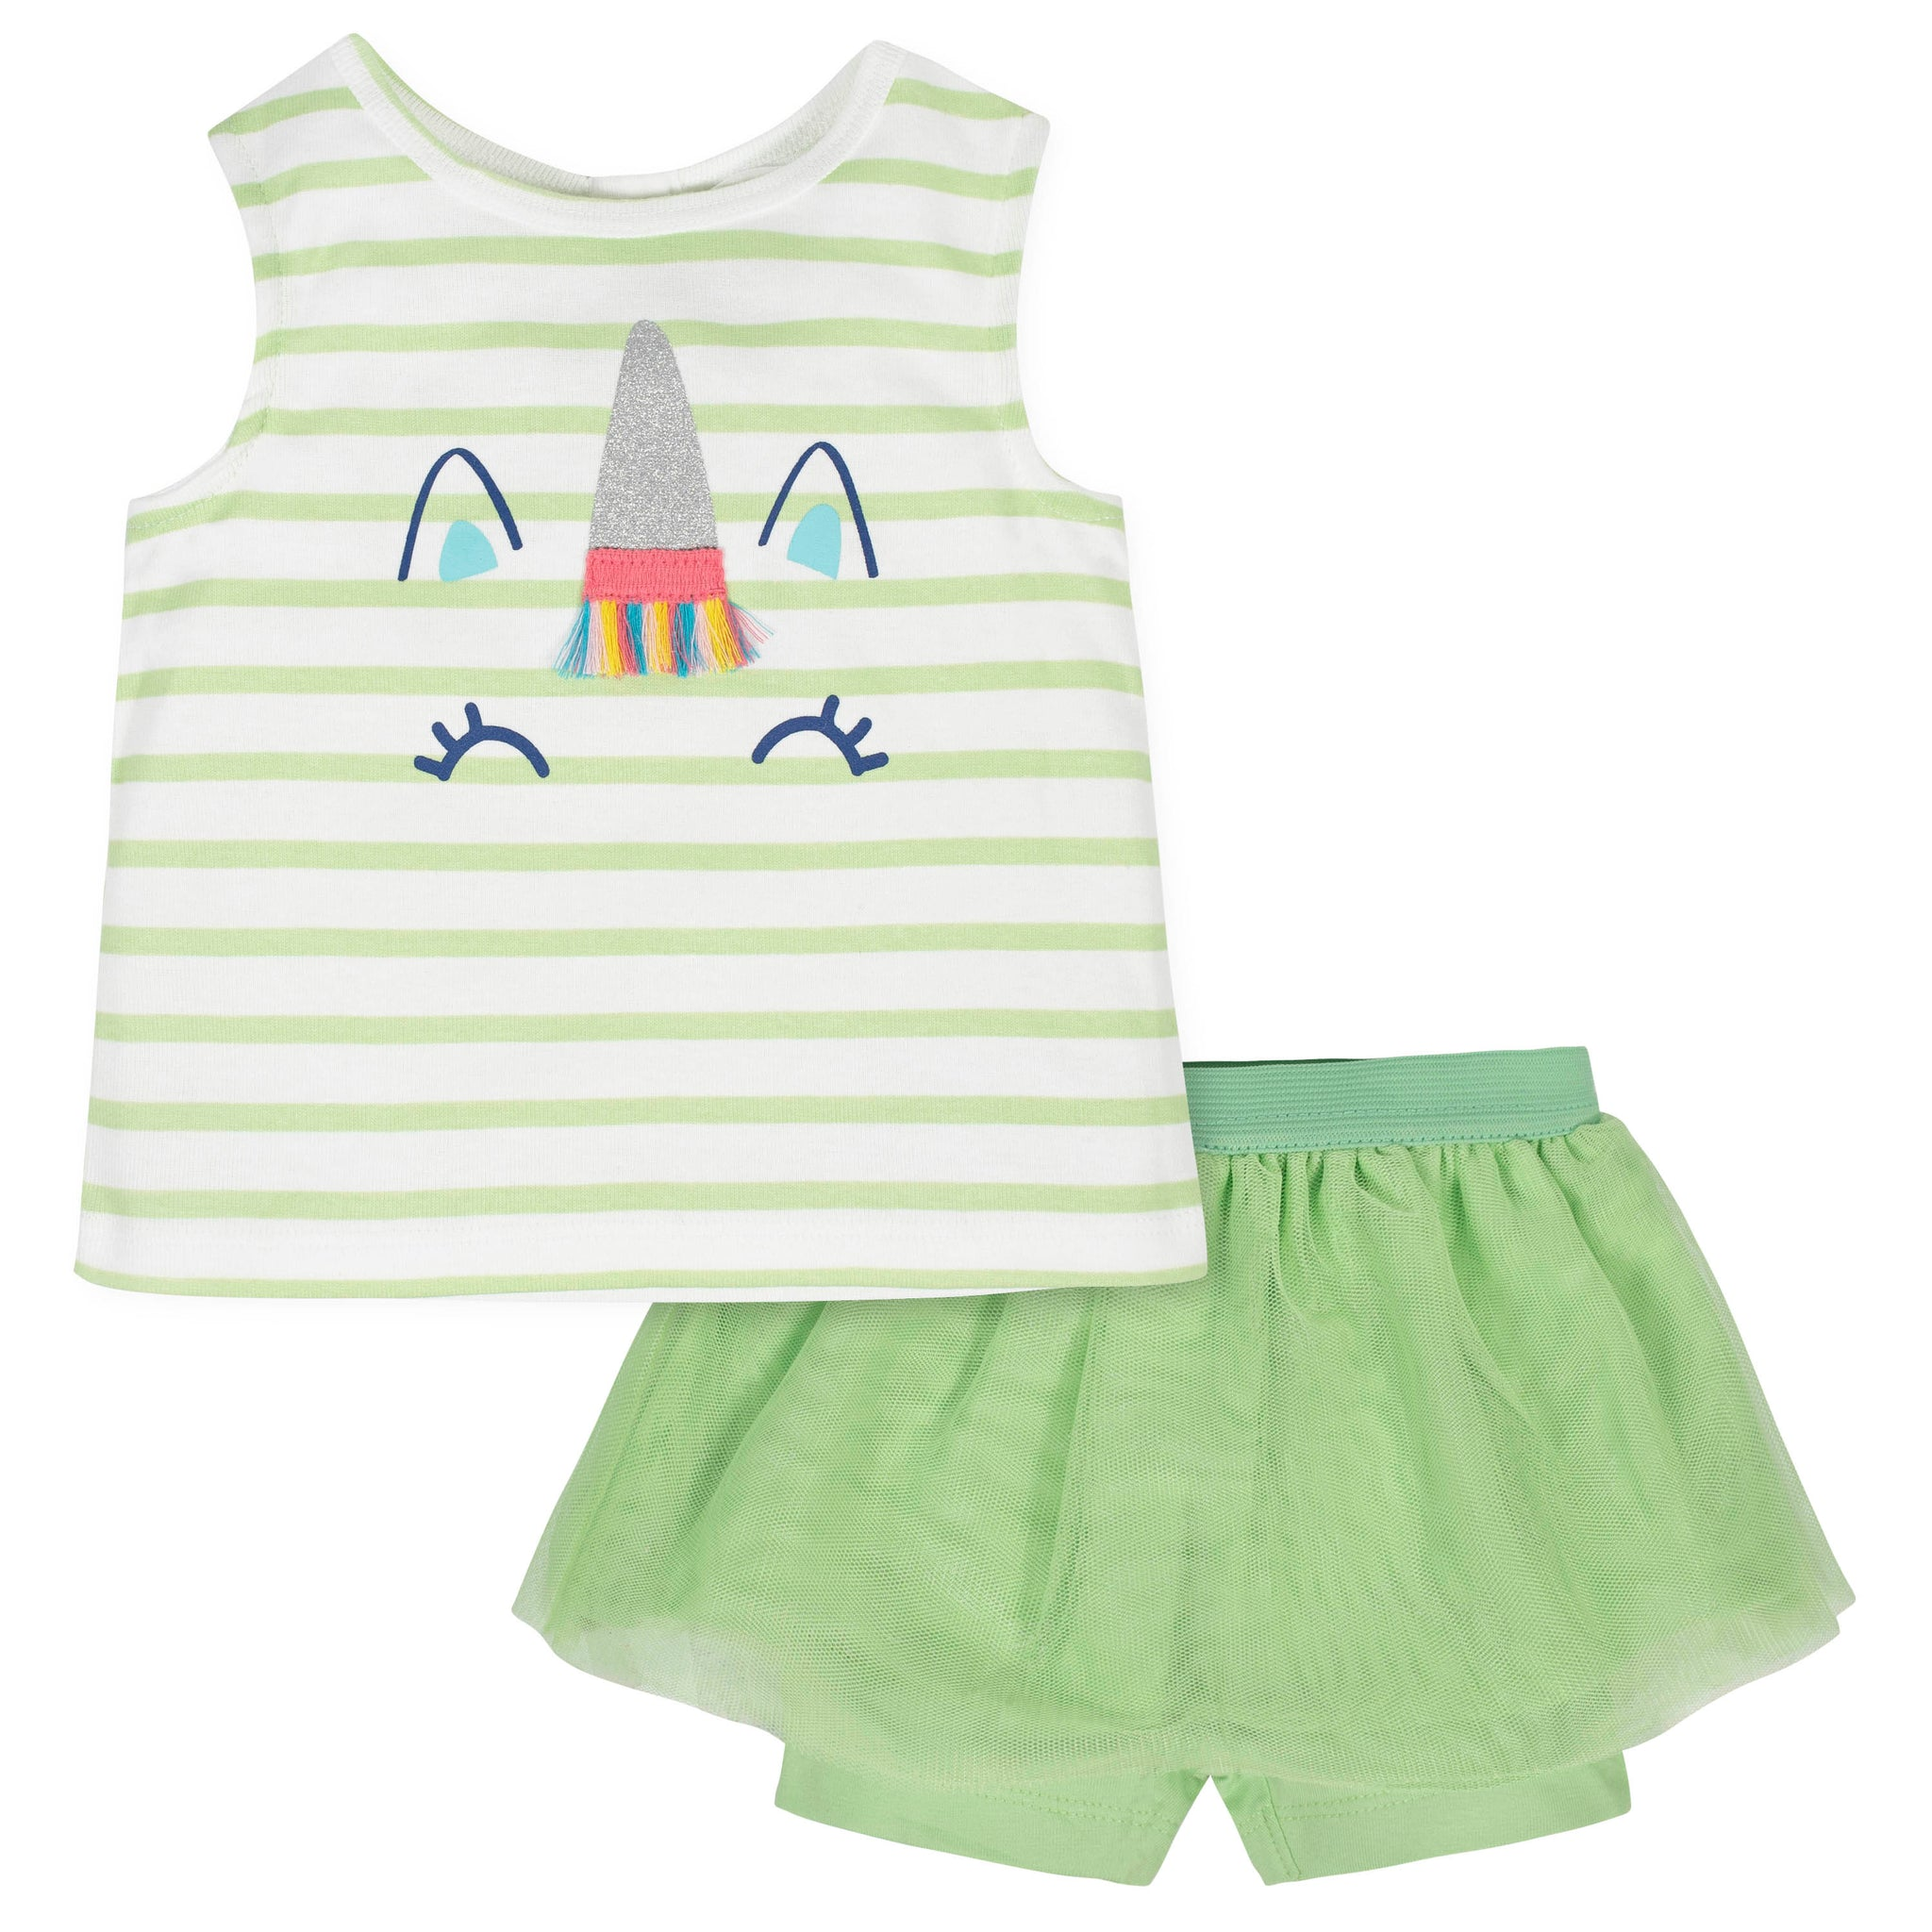 2-Piece Girls Unicorn Shorts Set-Gerber Childrenswear Wholesale